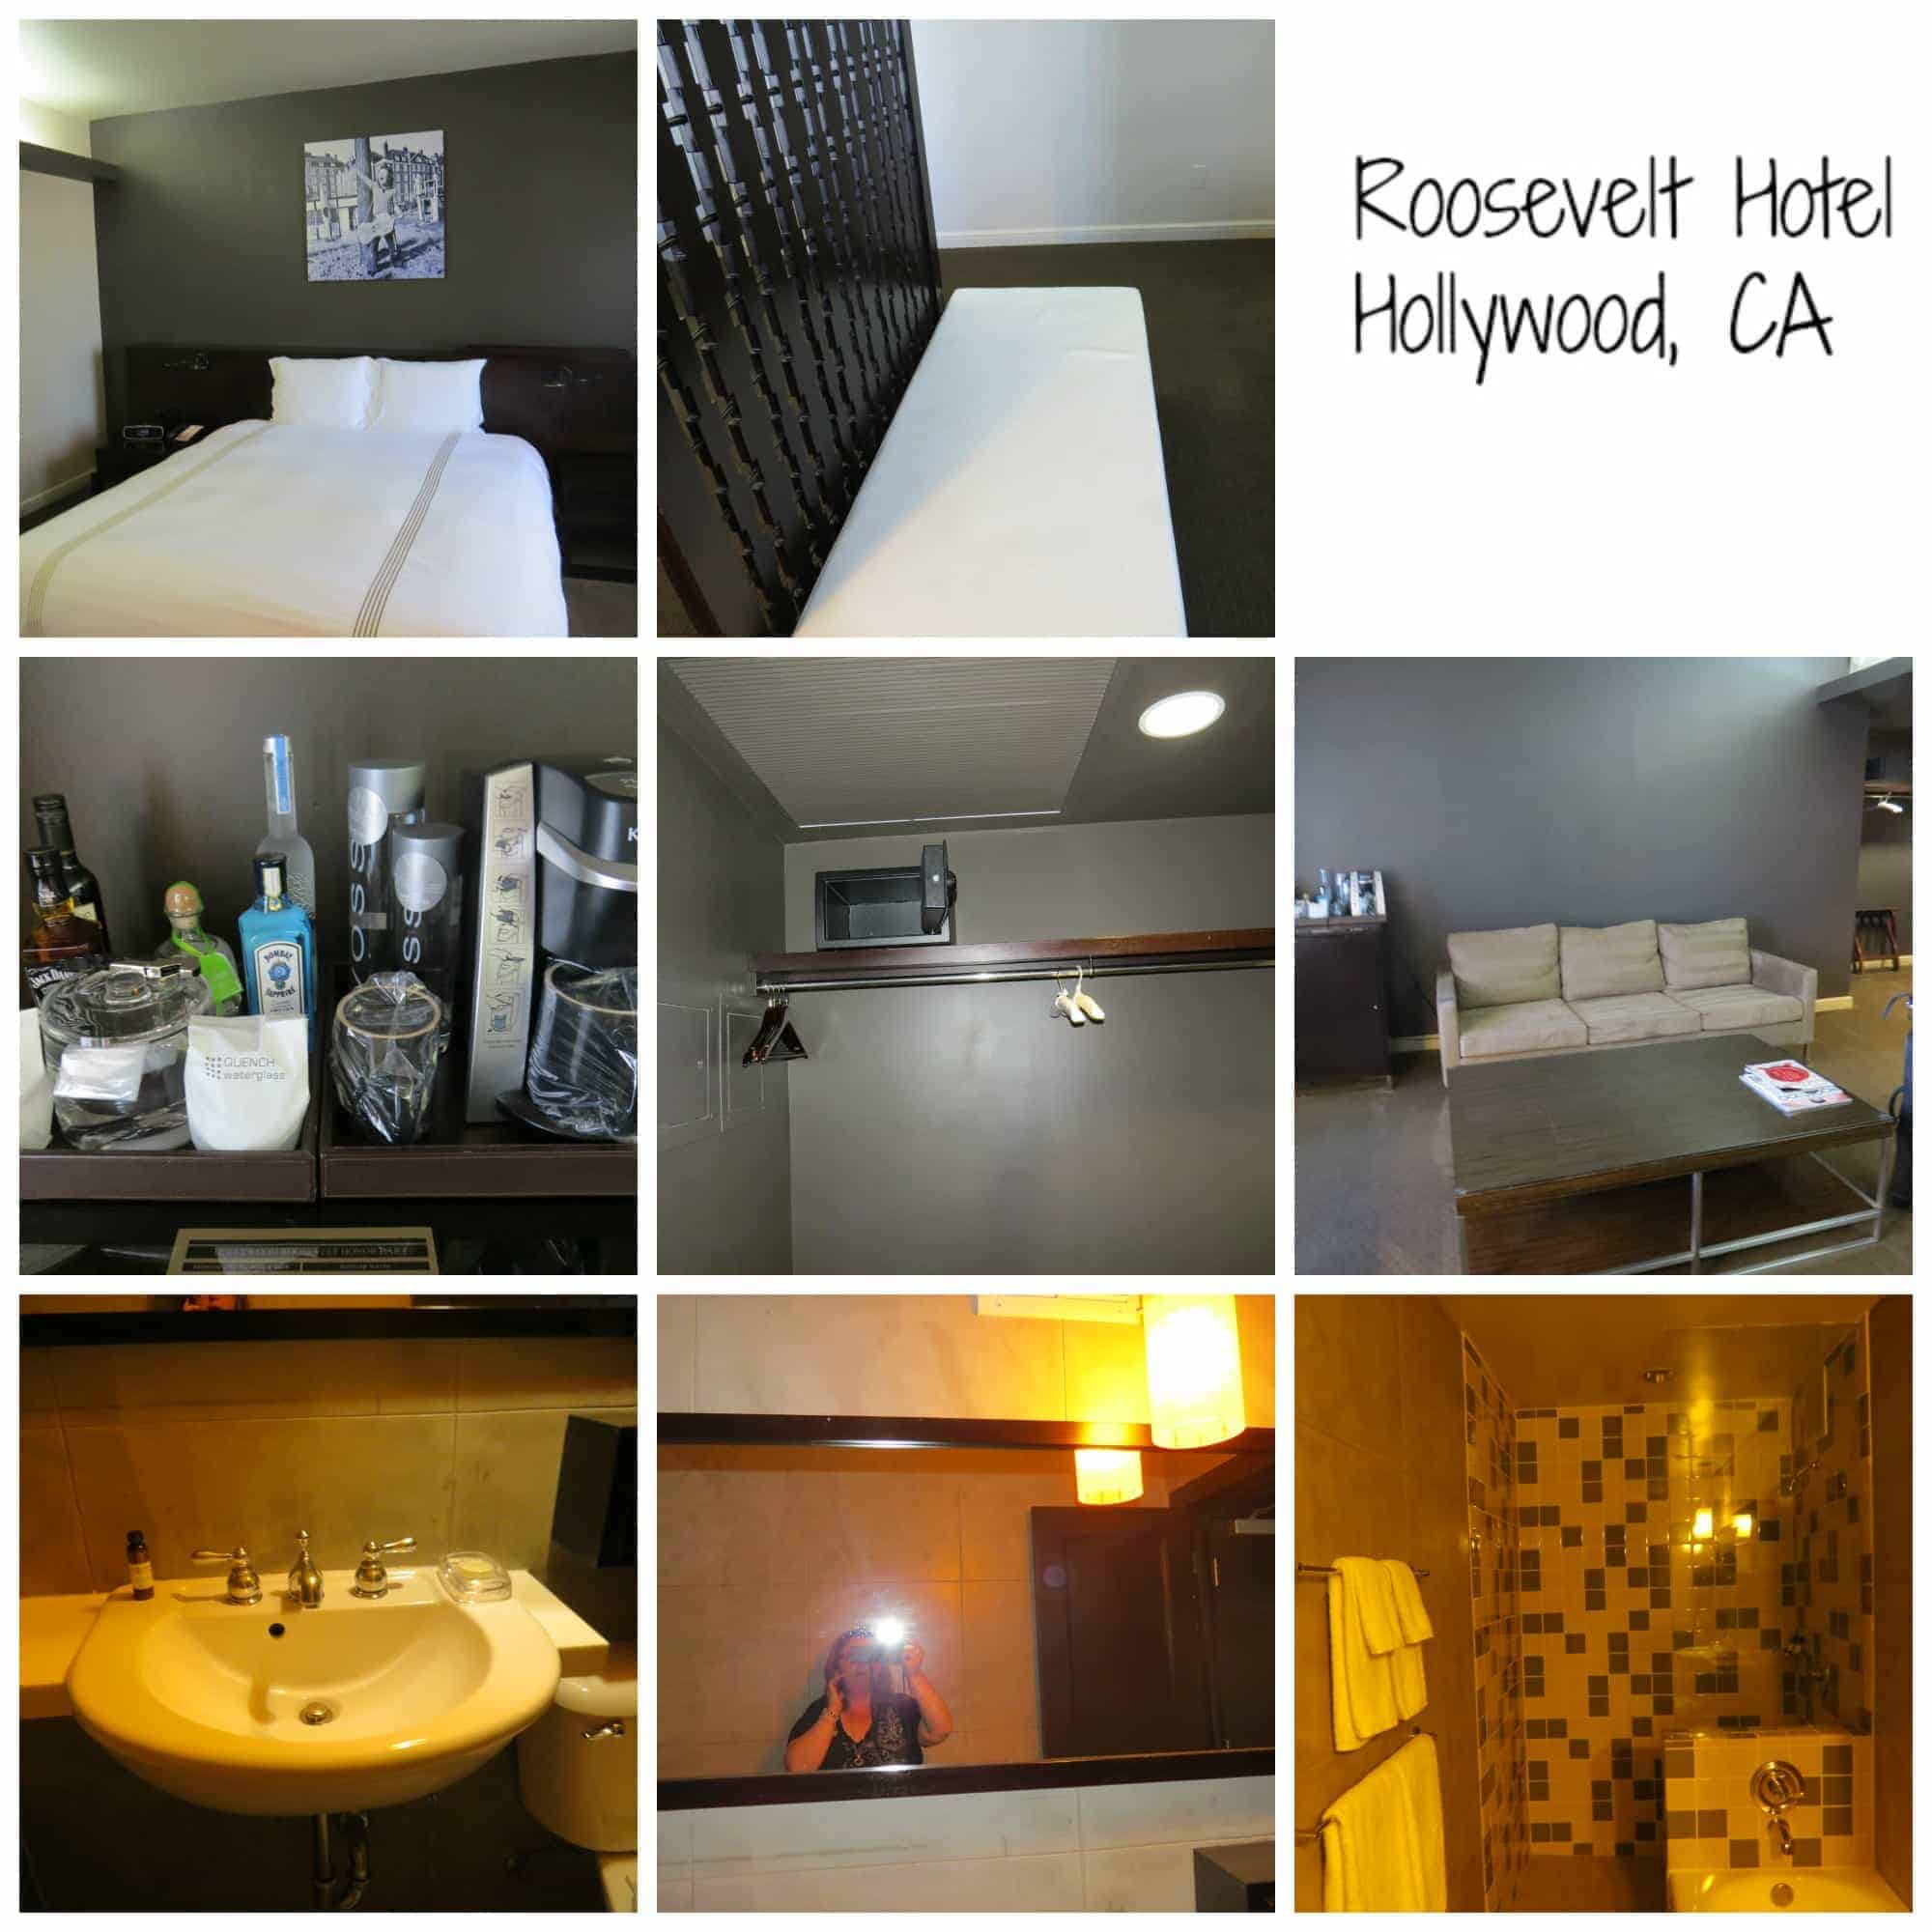 The Roosevelt Hotel Hollywood, CA